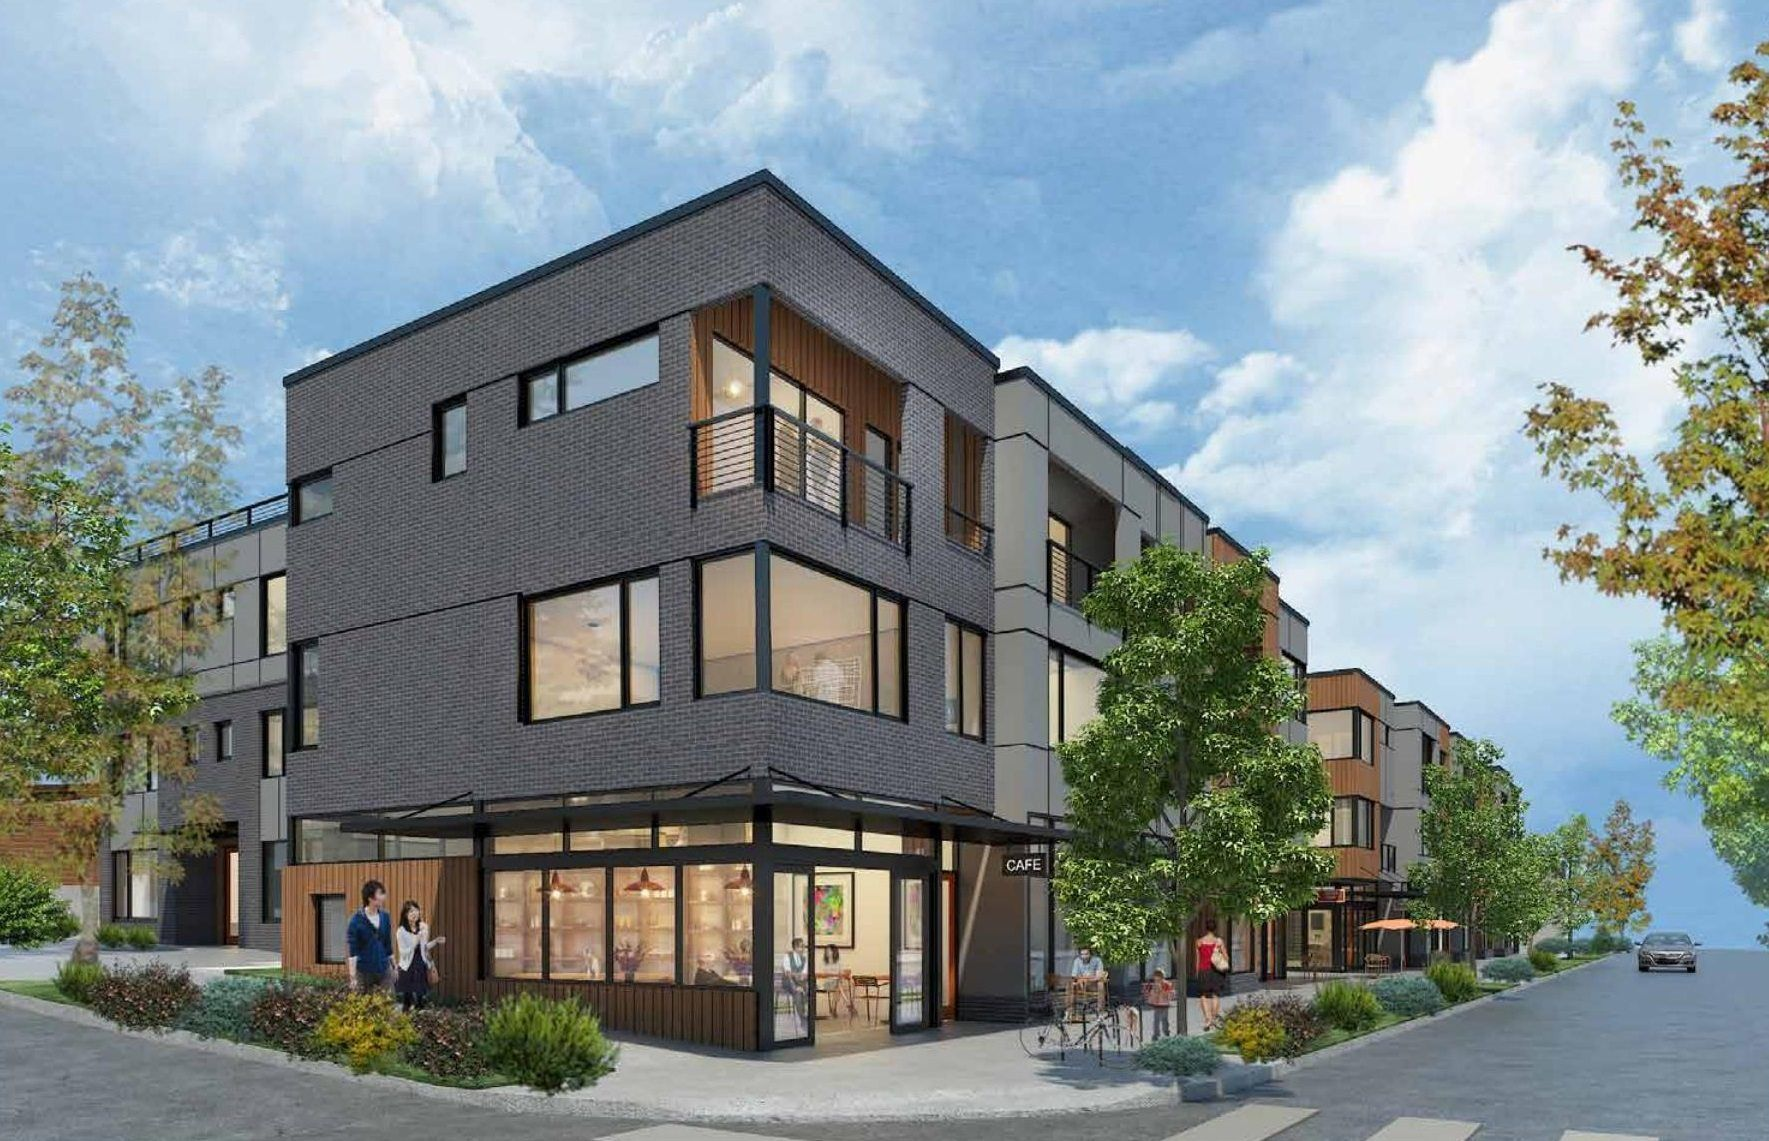 West Seattle S Rally Townhouses Urban Living Townhouse Exterior Townhouse Designs Urban Living